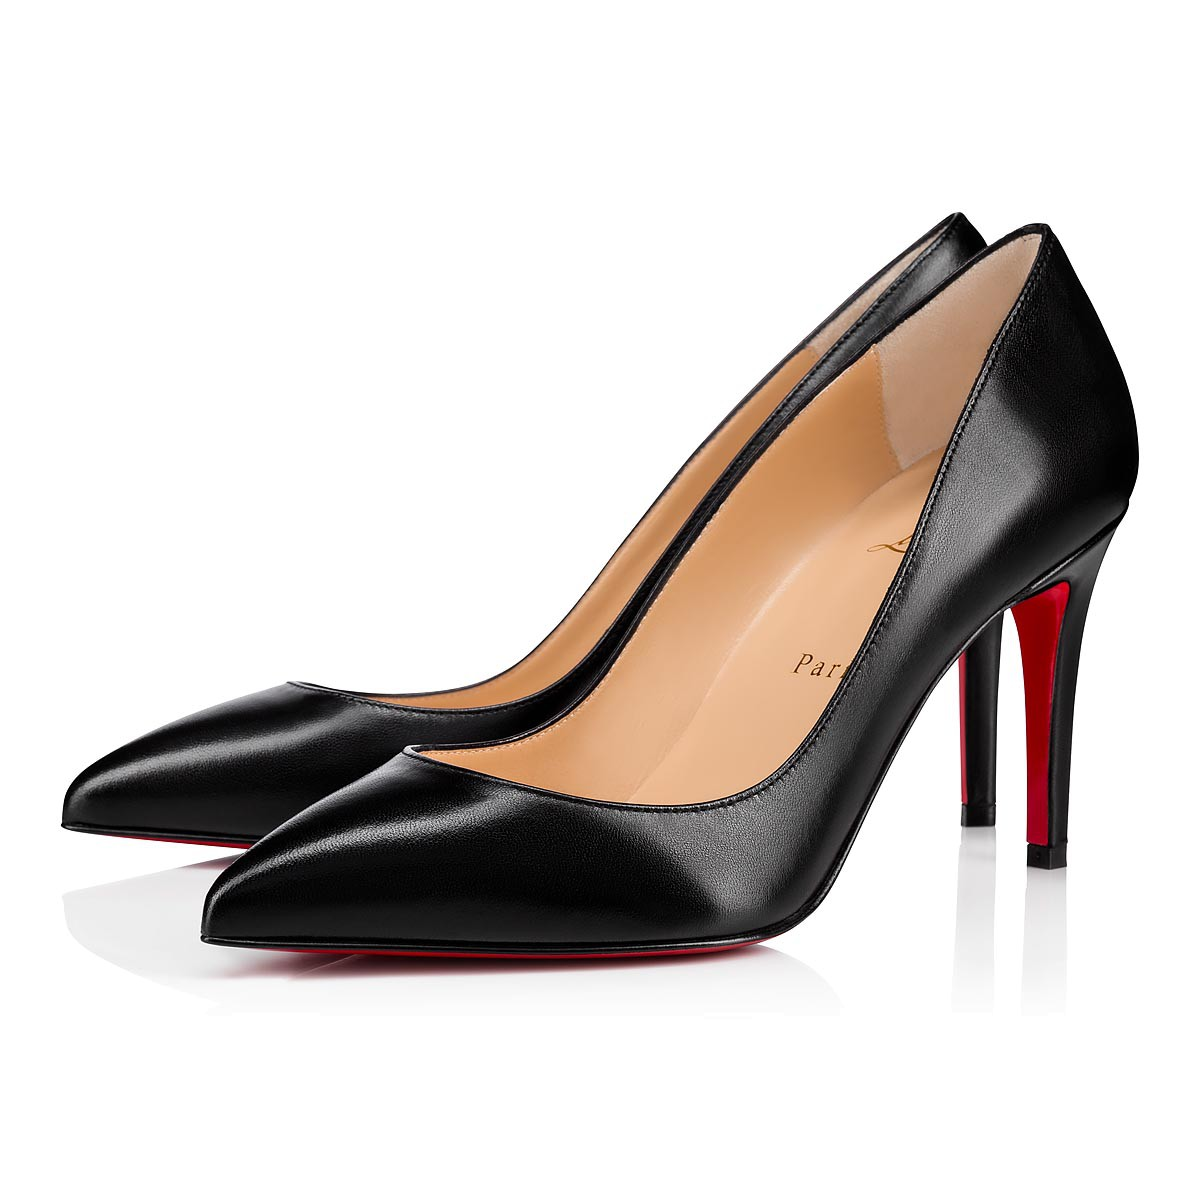 ba95f4f34b2b Pigalle 85 Black Leather - Women Shoes - Christian Louboutin